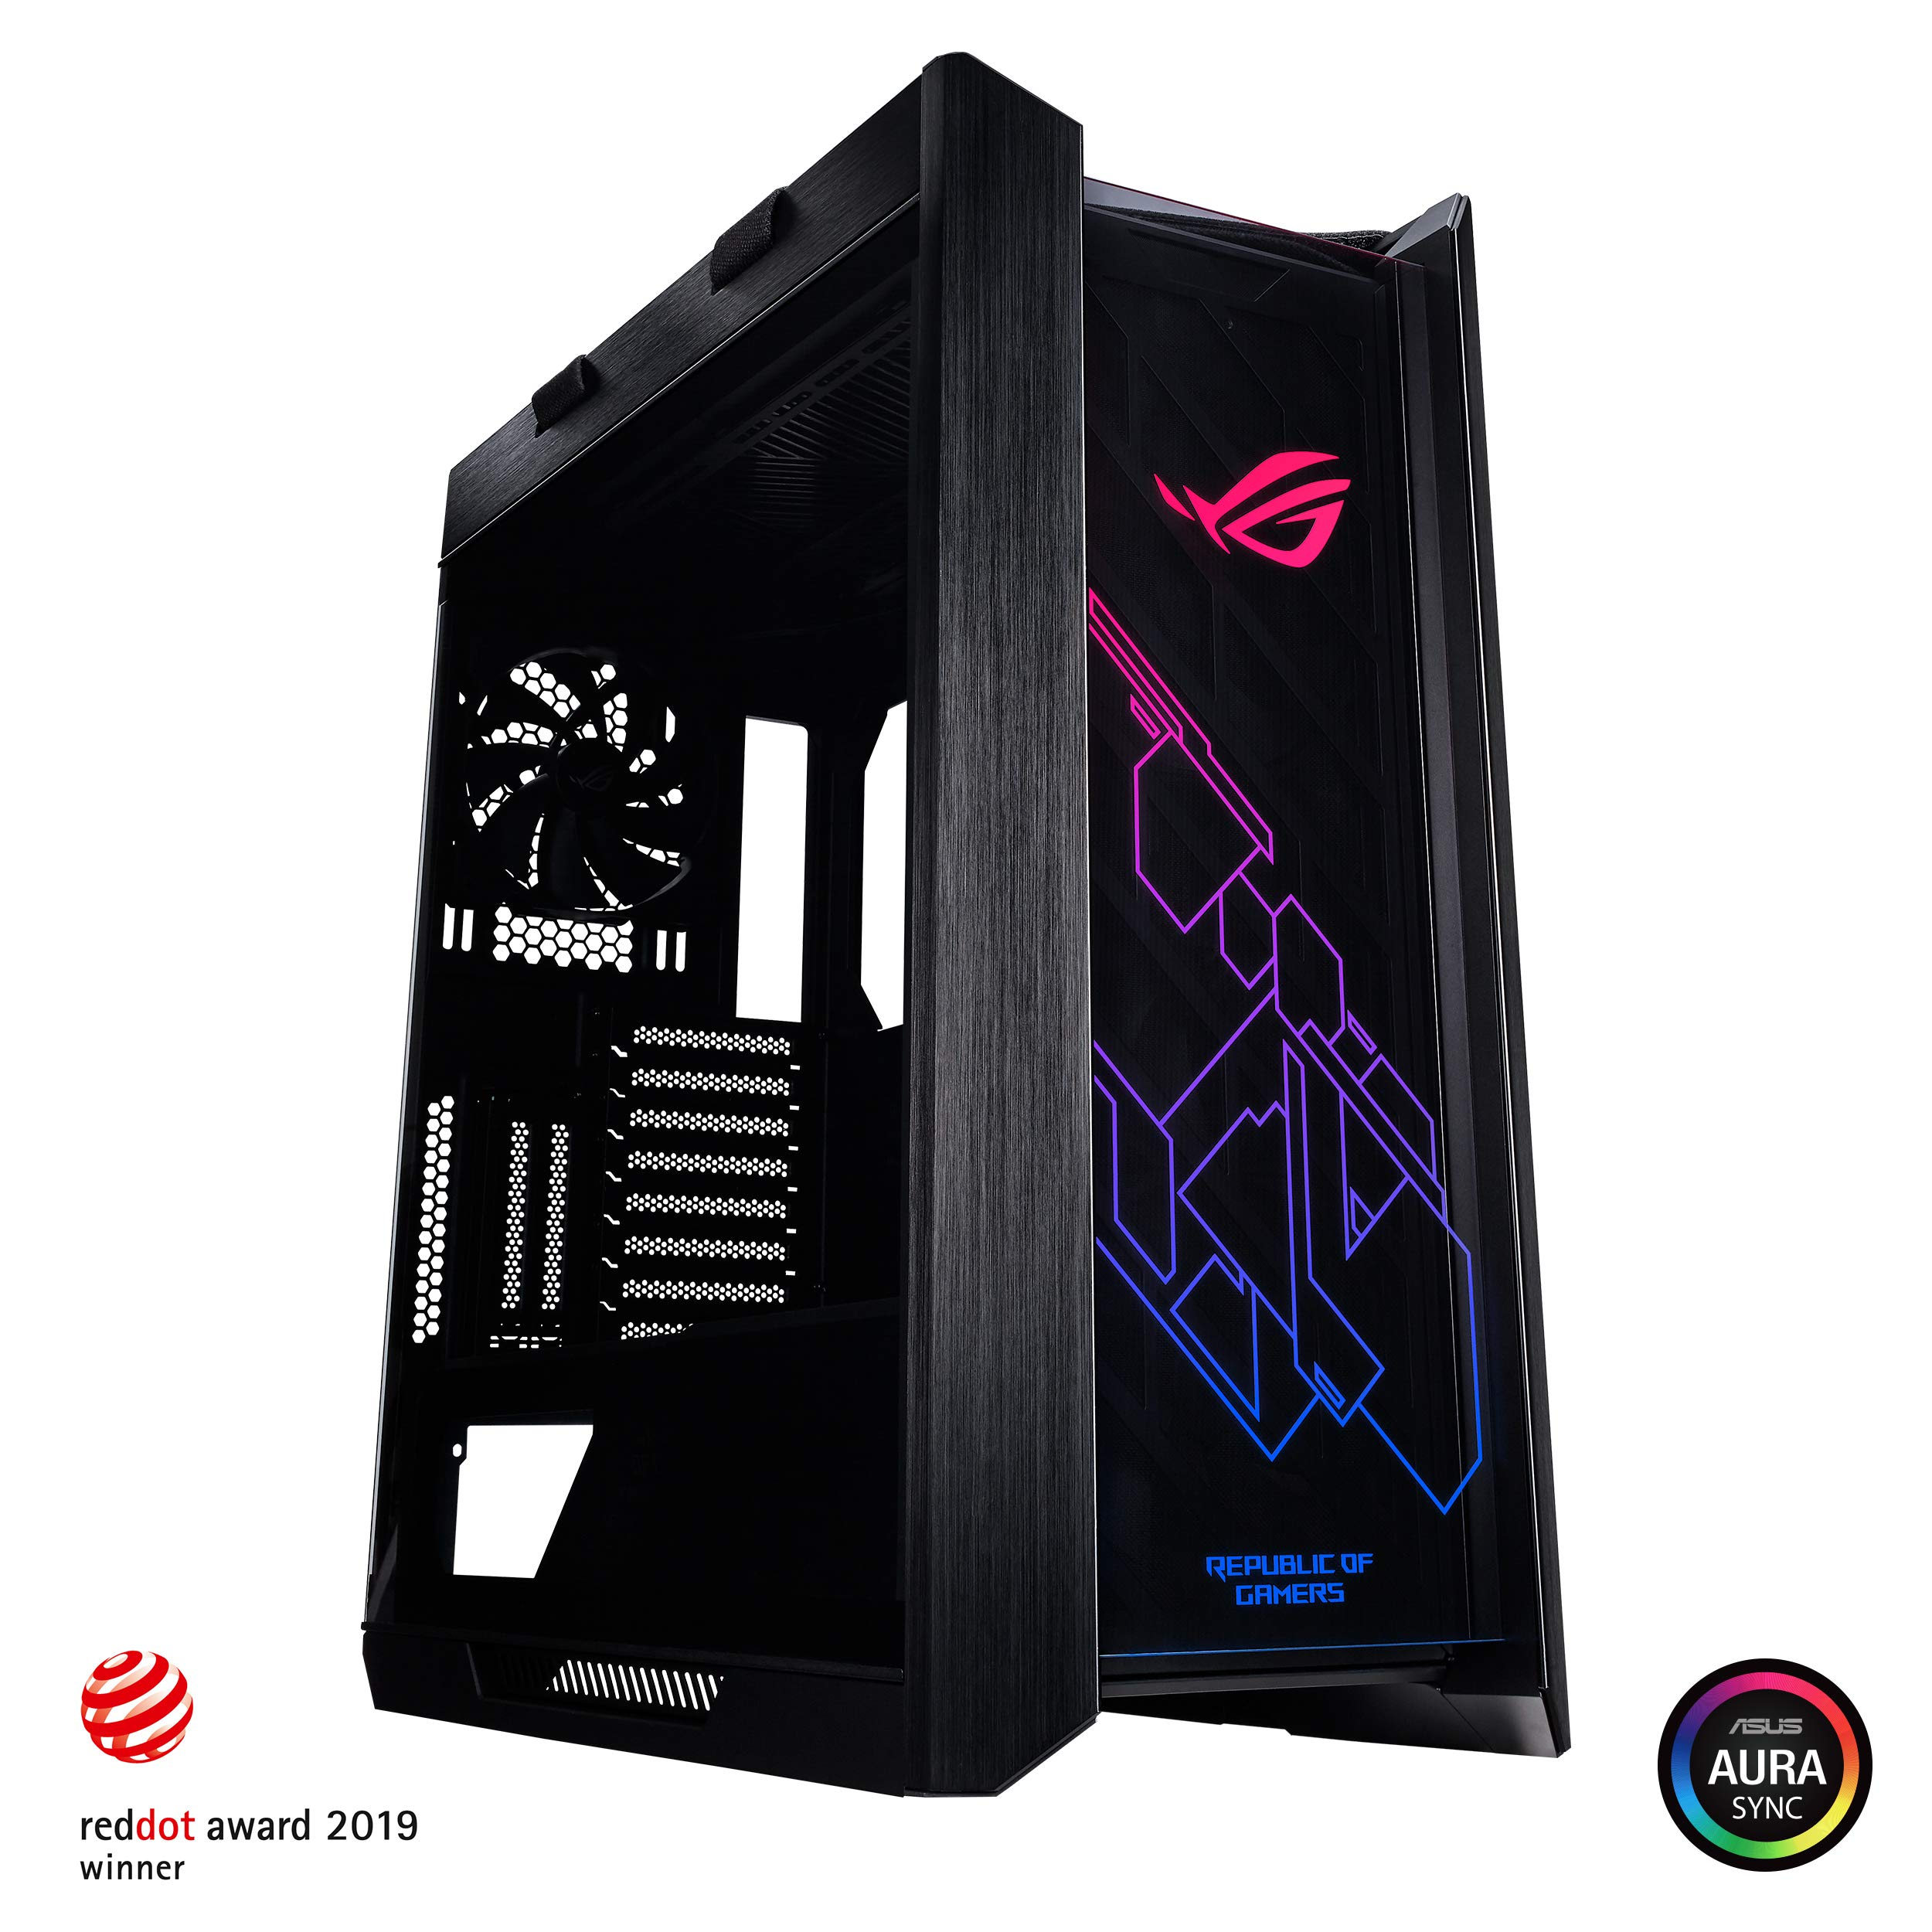 Asus ROG Strix Helios GX601 RGB Mid-Tower Computer Case for up to EATX Motherboards with USB 3.1 Front Panel, Smoked Tempered Glass, Brushed Aluminum and Steel Construction, and Four Case Fans by ASUS